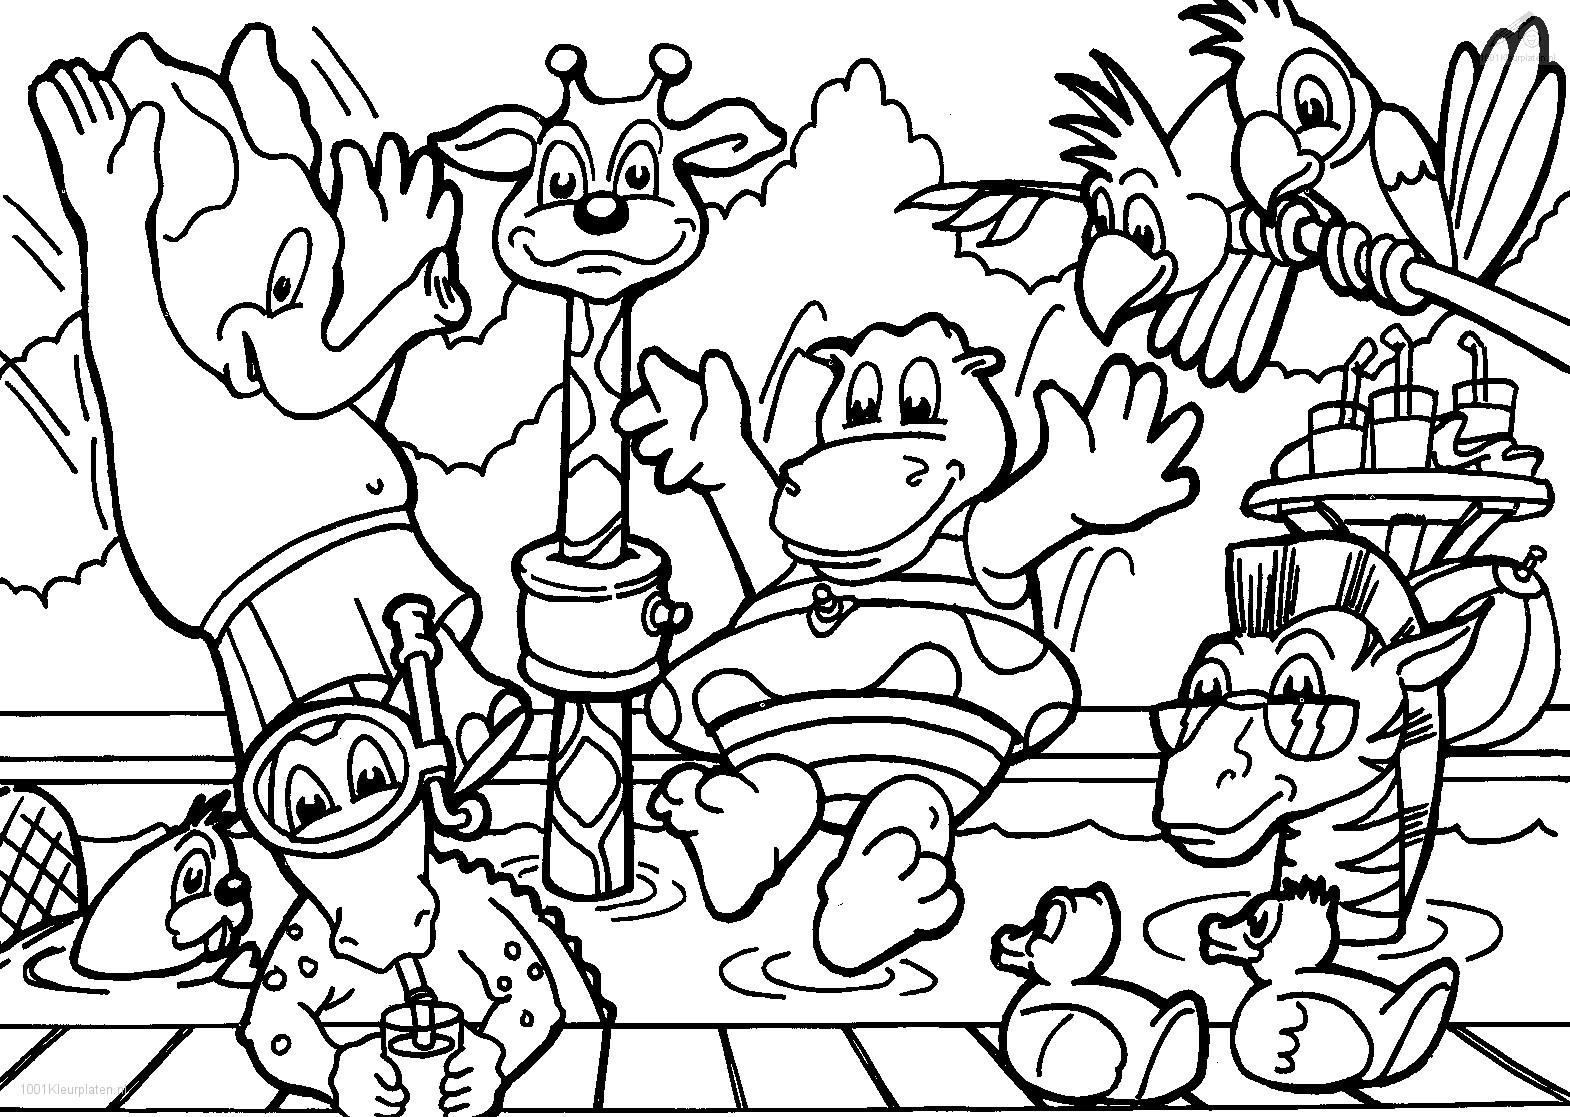 Animal Coloring Pages to Print | Free Coloring Sheets